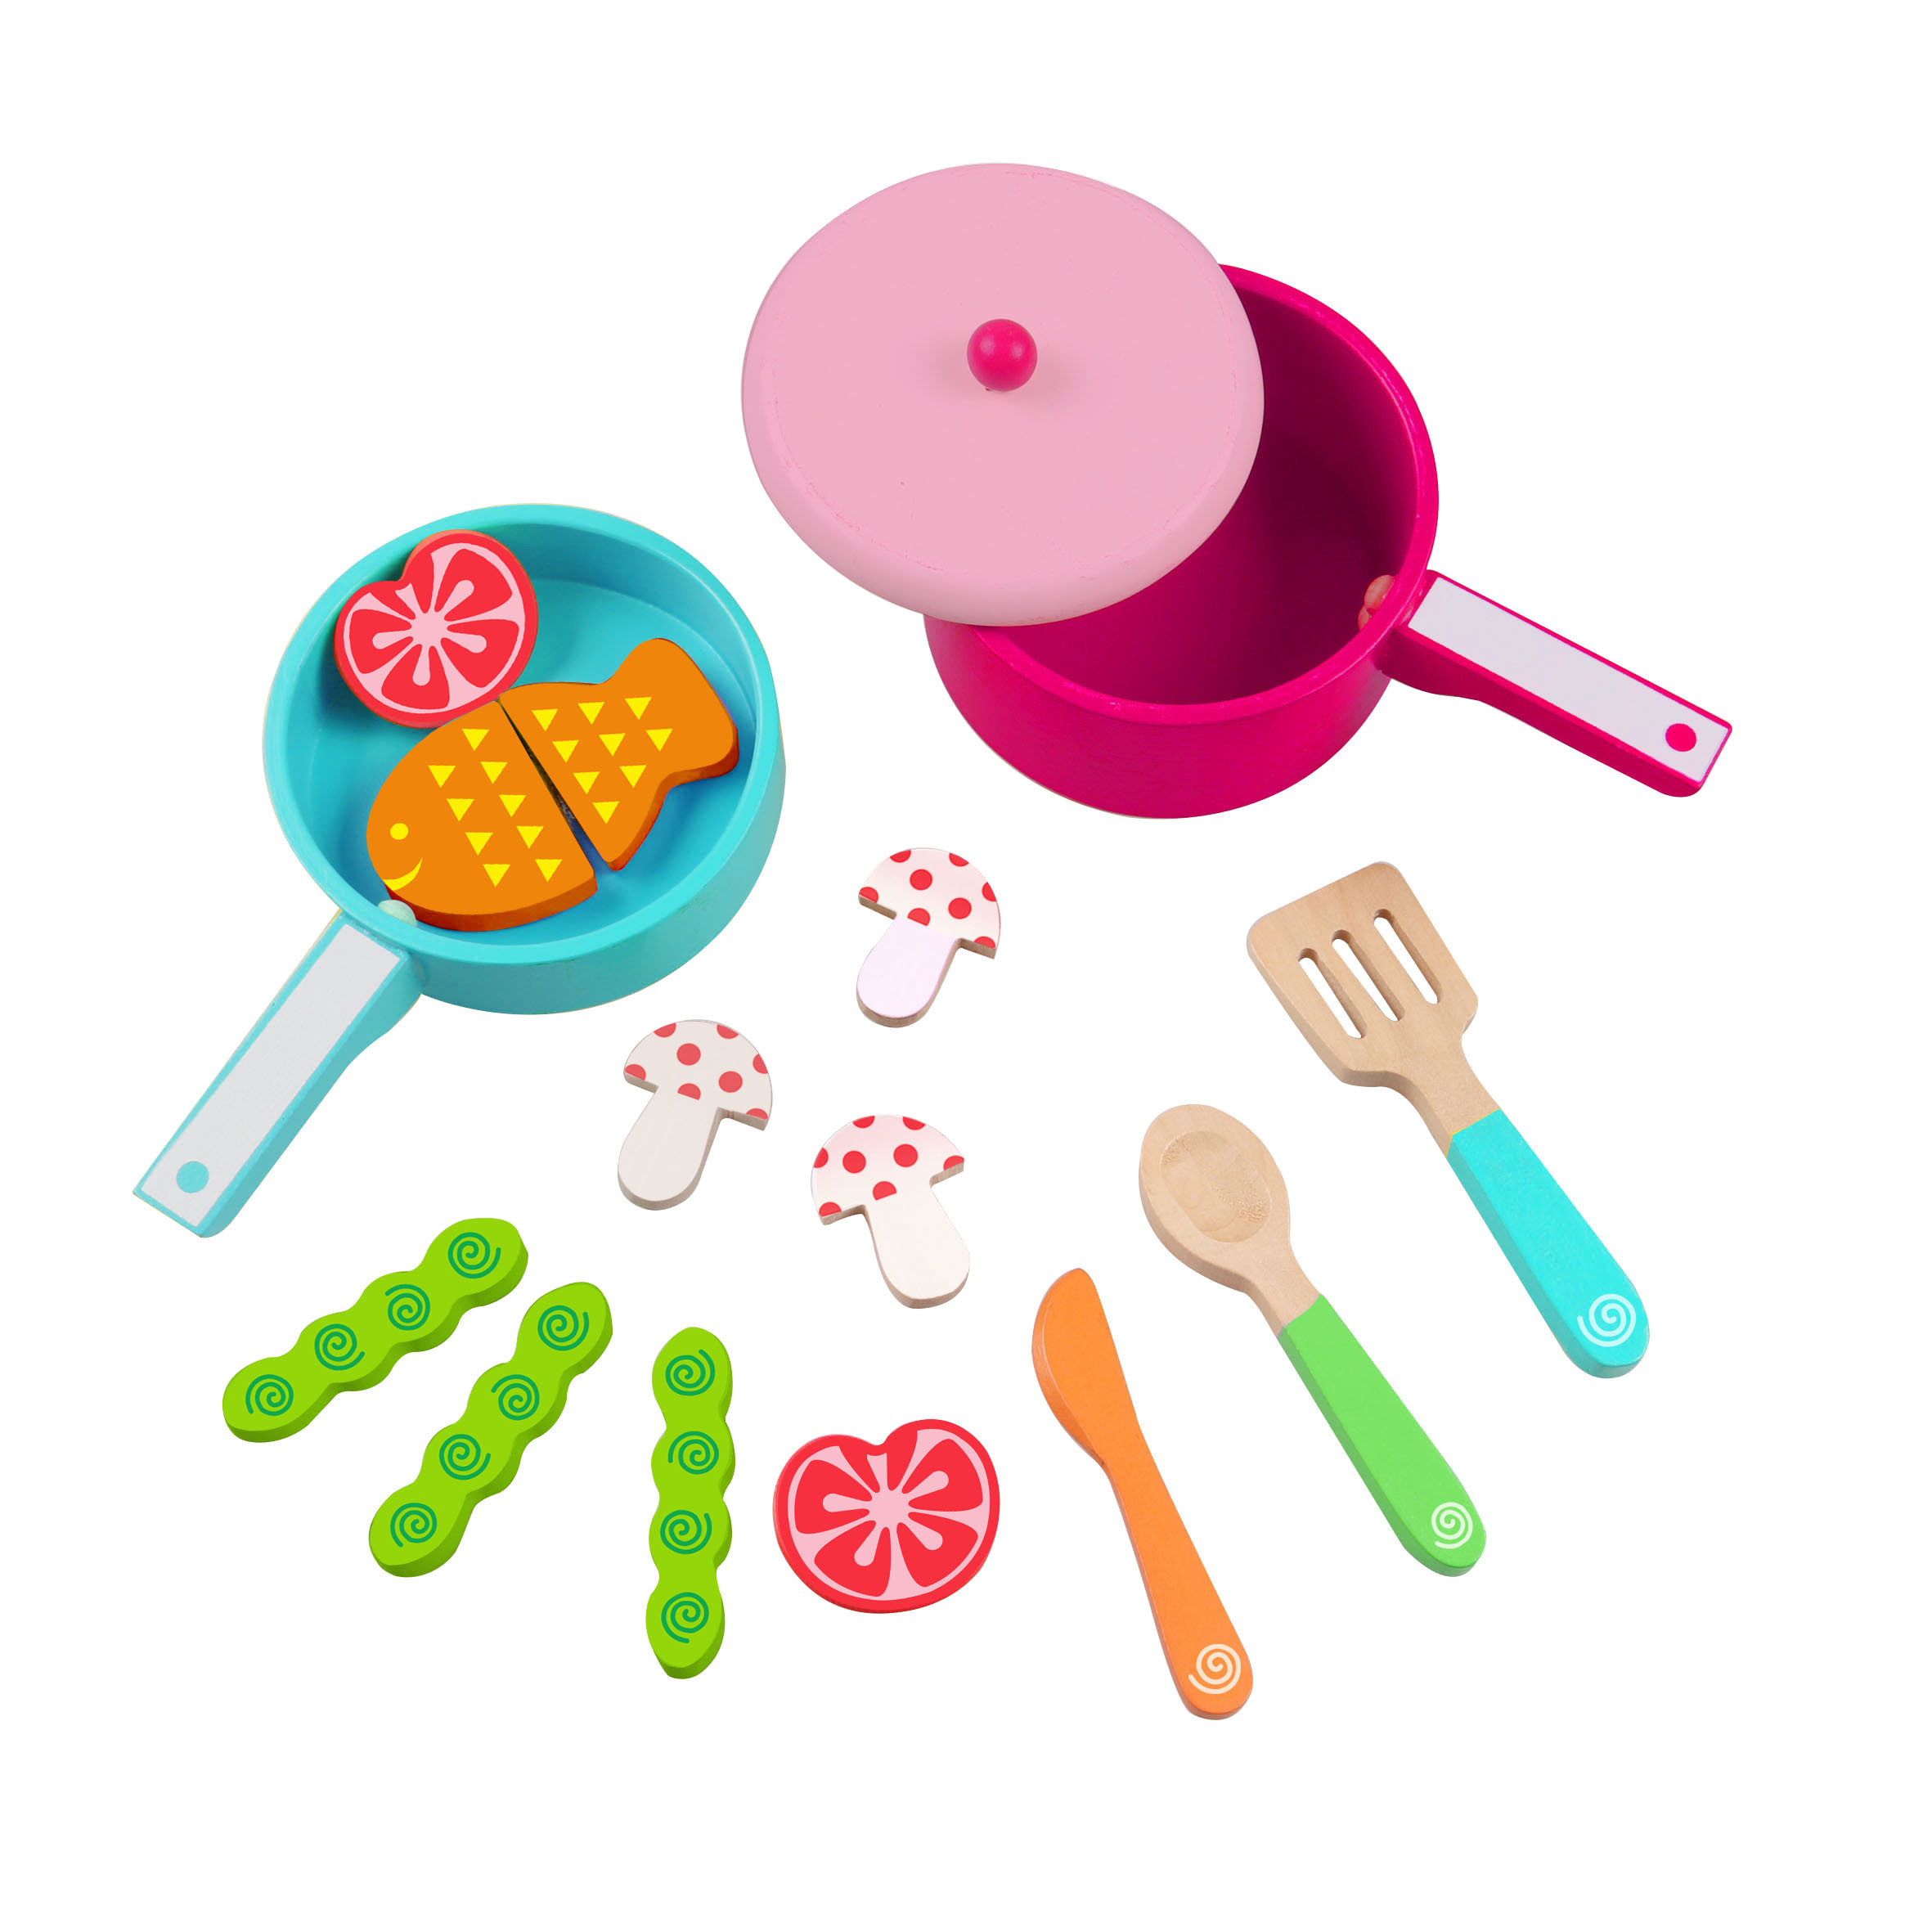 15PCS Wooden Cooking Playing Set Toy for Kids and Children